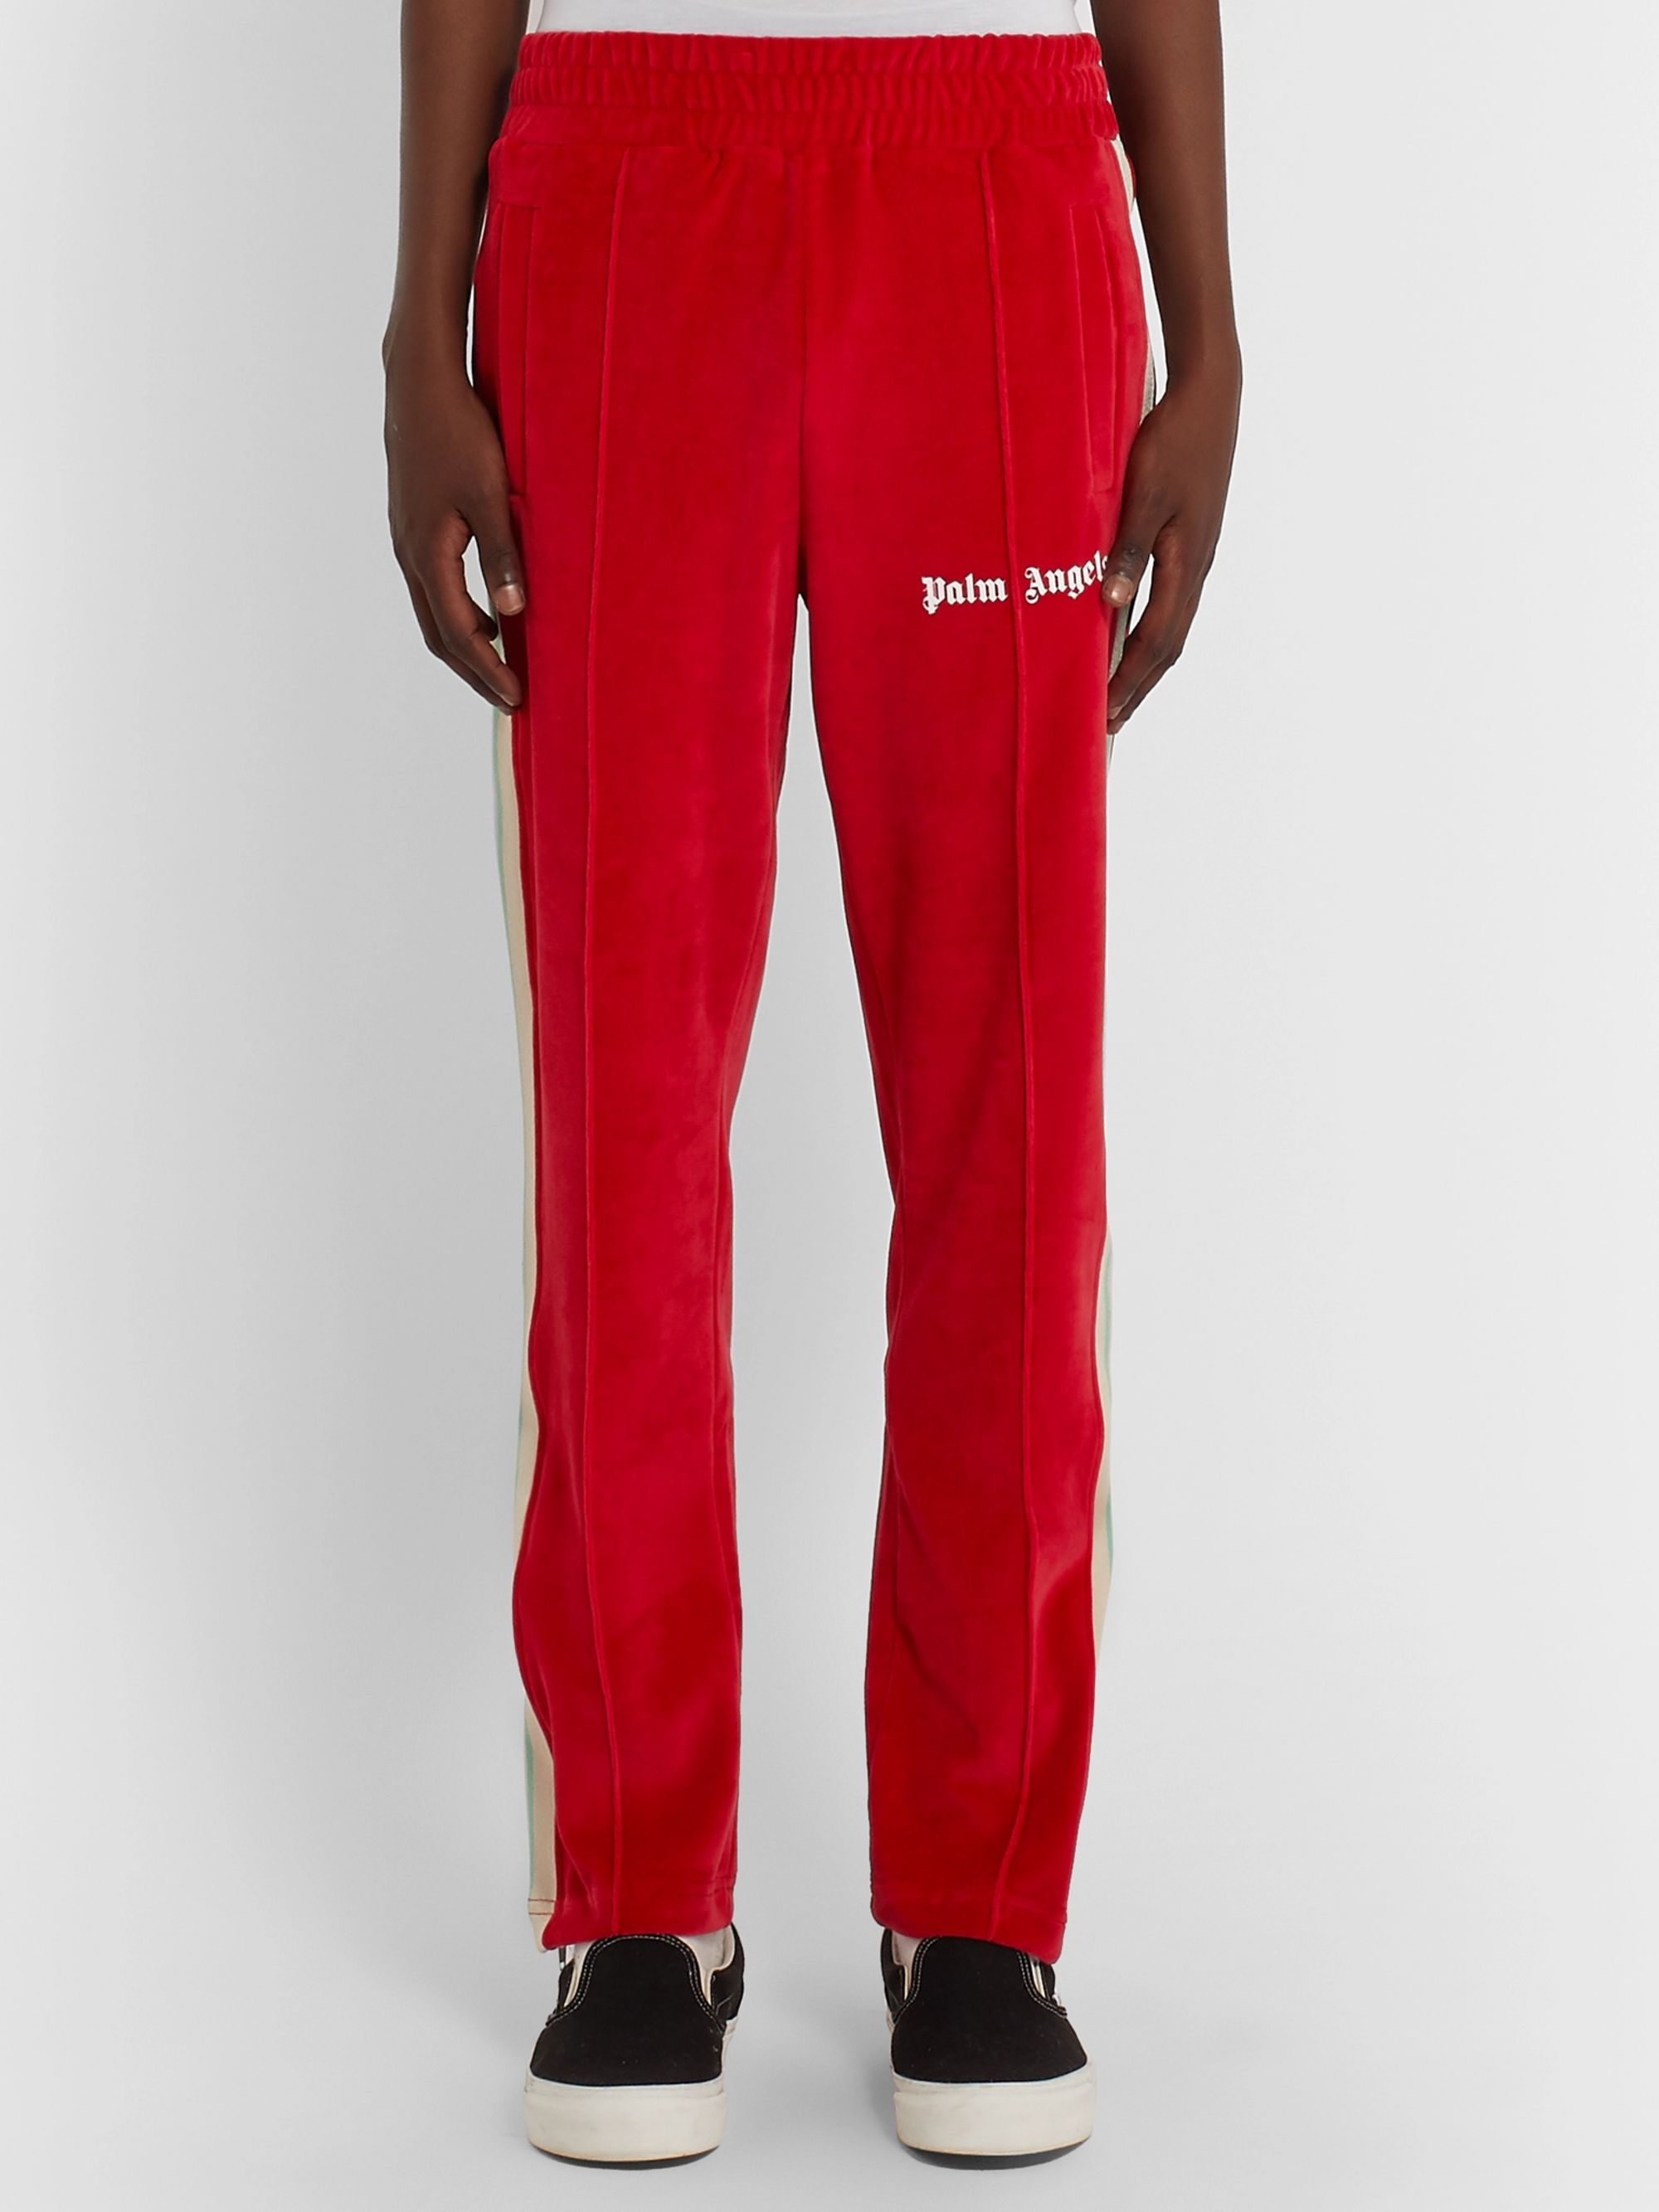 Palm Angels Slim-Fit Logo-Print Webbing-Trimmed Tech-Jersey Track Pants